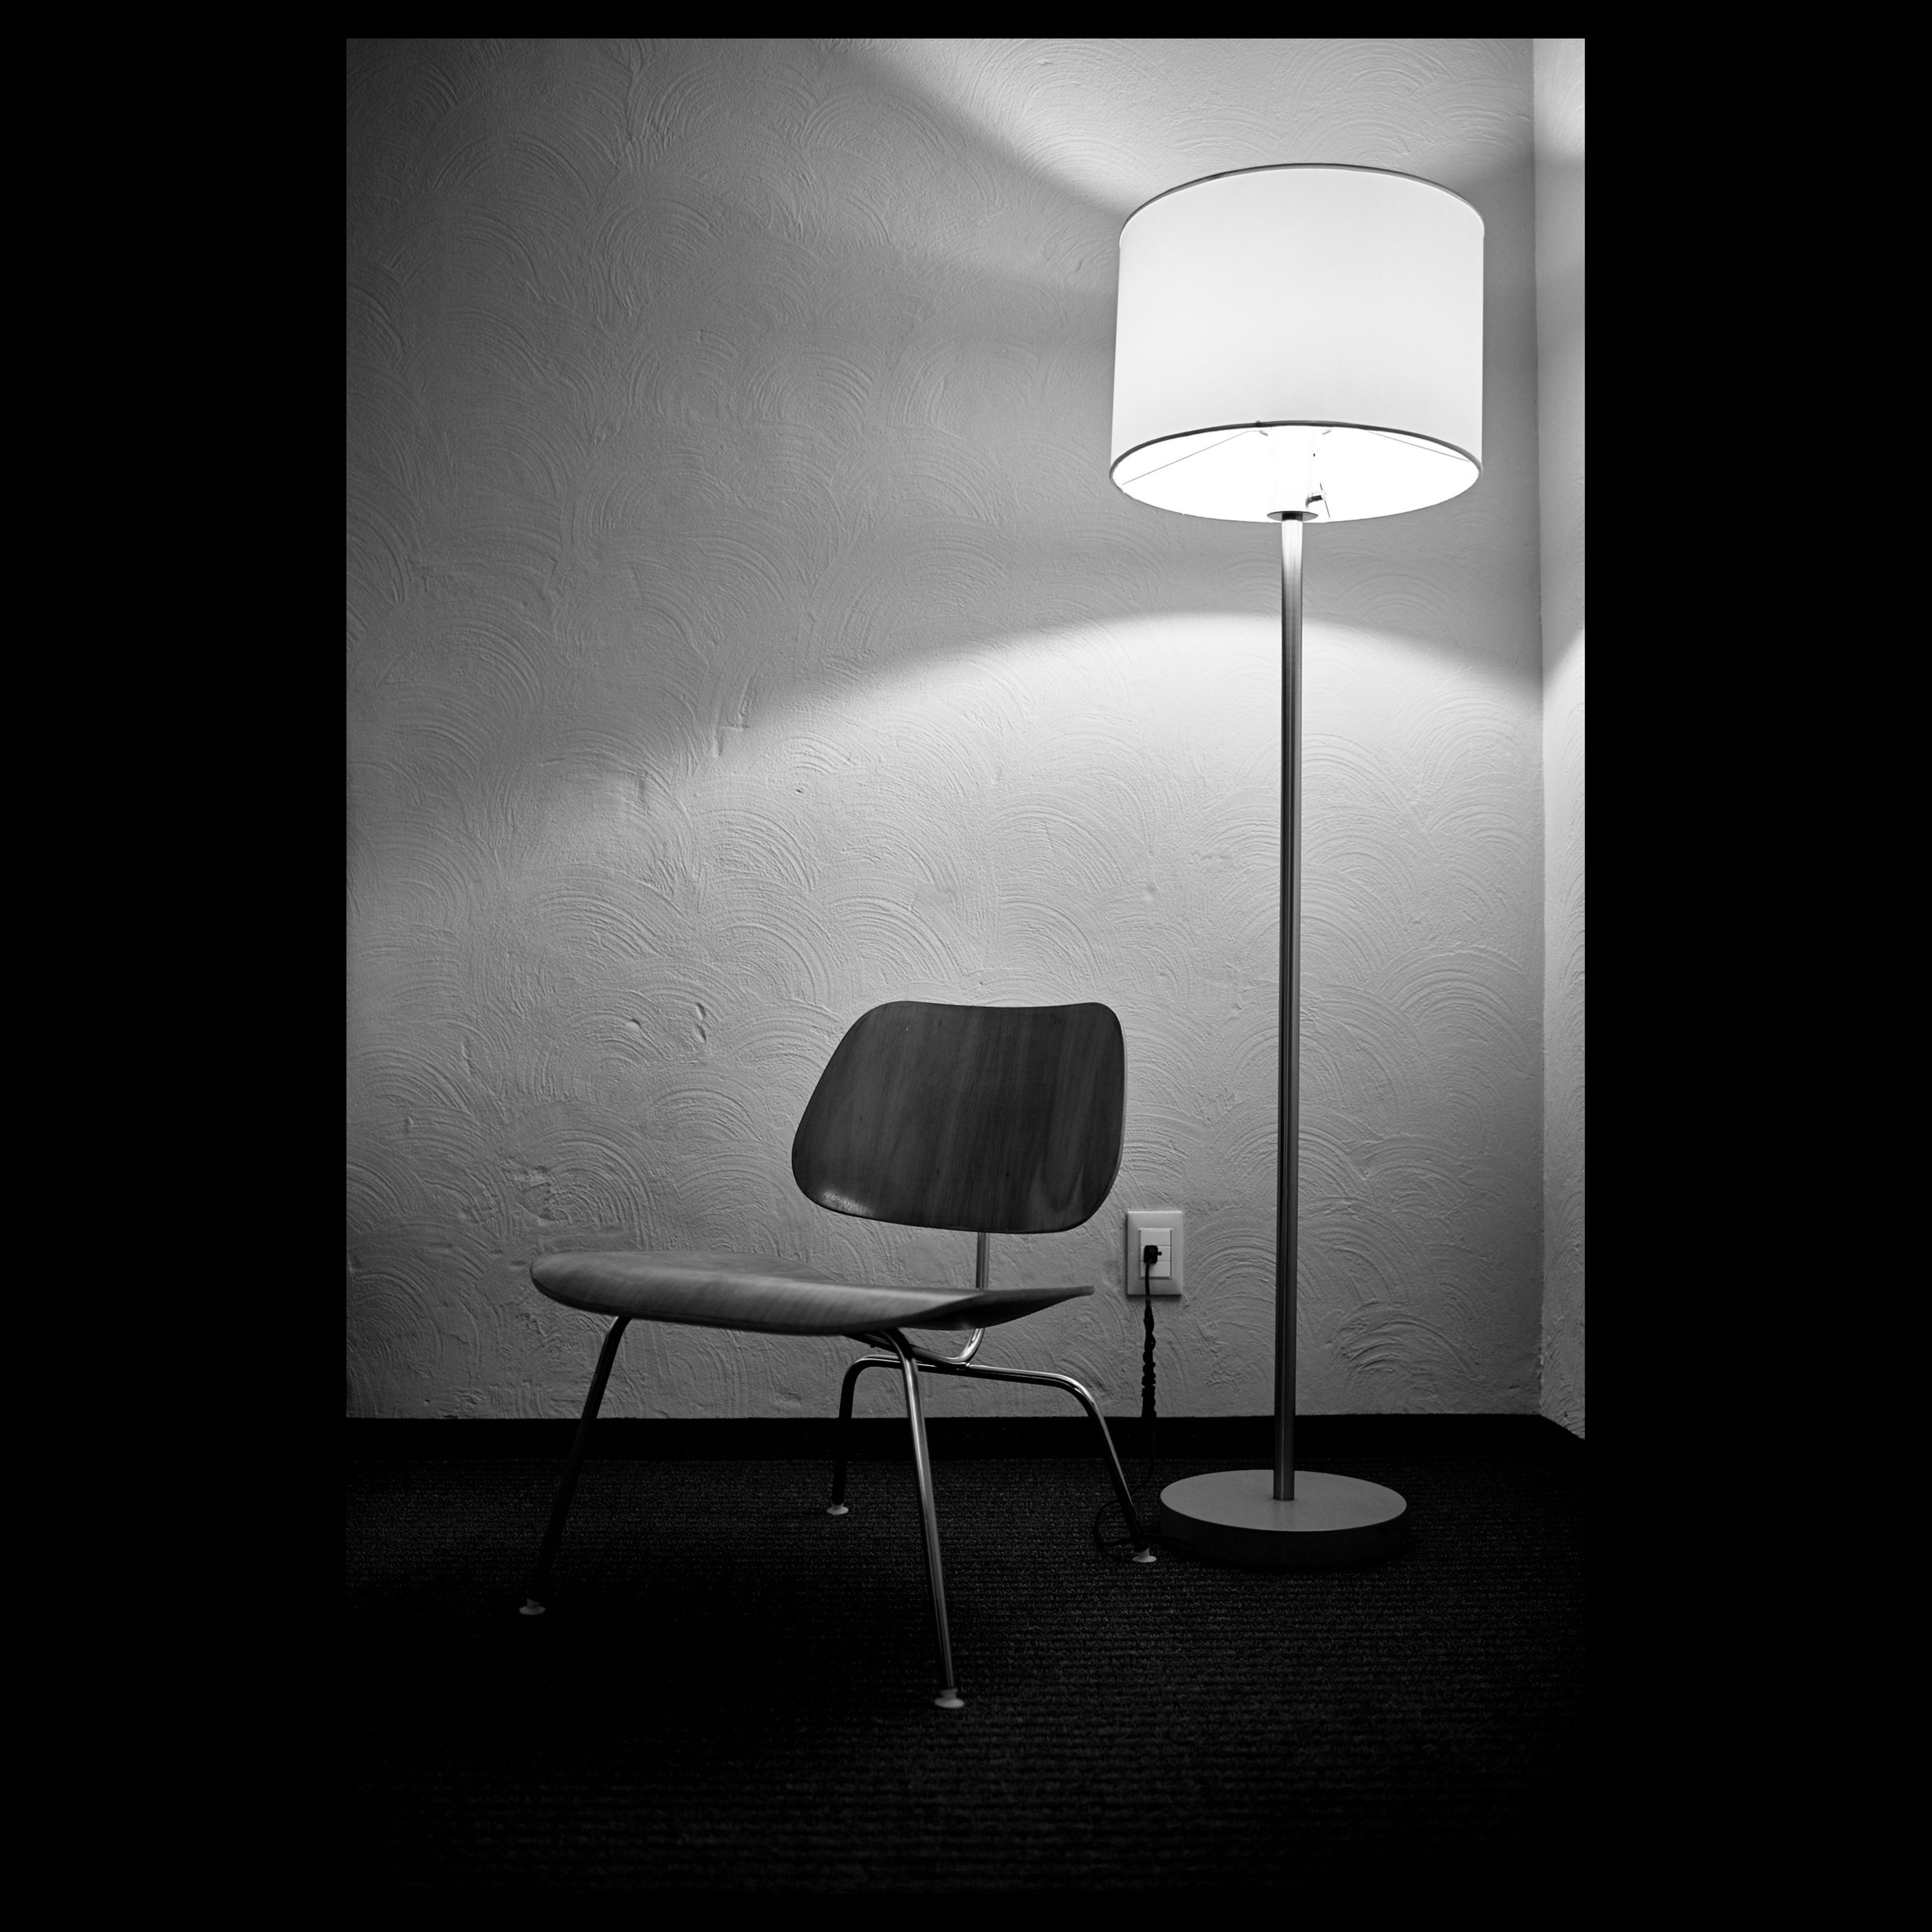 indoors, lighting equipment, illuminated, electric lamp, absence, chair, electric light, lamp, electricity, home interior, empty, wall - building feature, table, hanging, light - natural phenomenon, wall, ceiling, no people, lit, dark